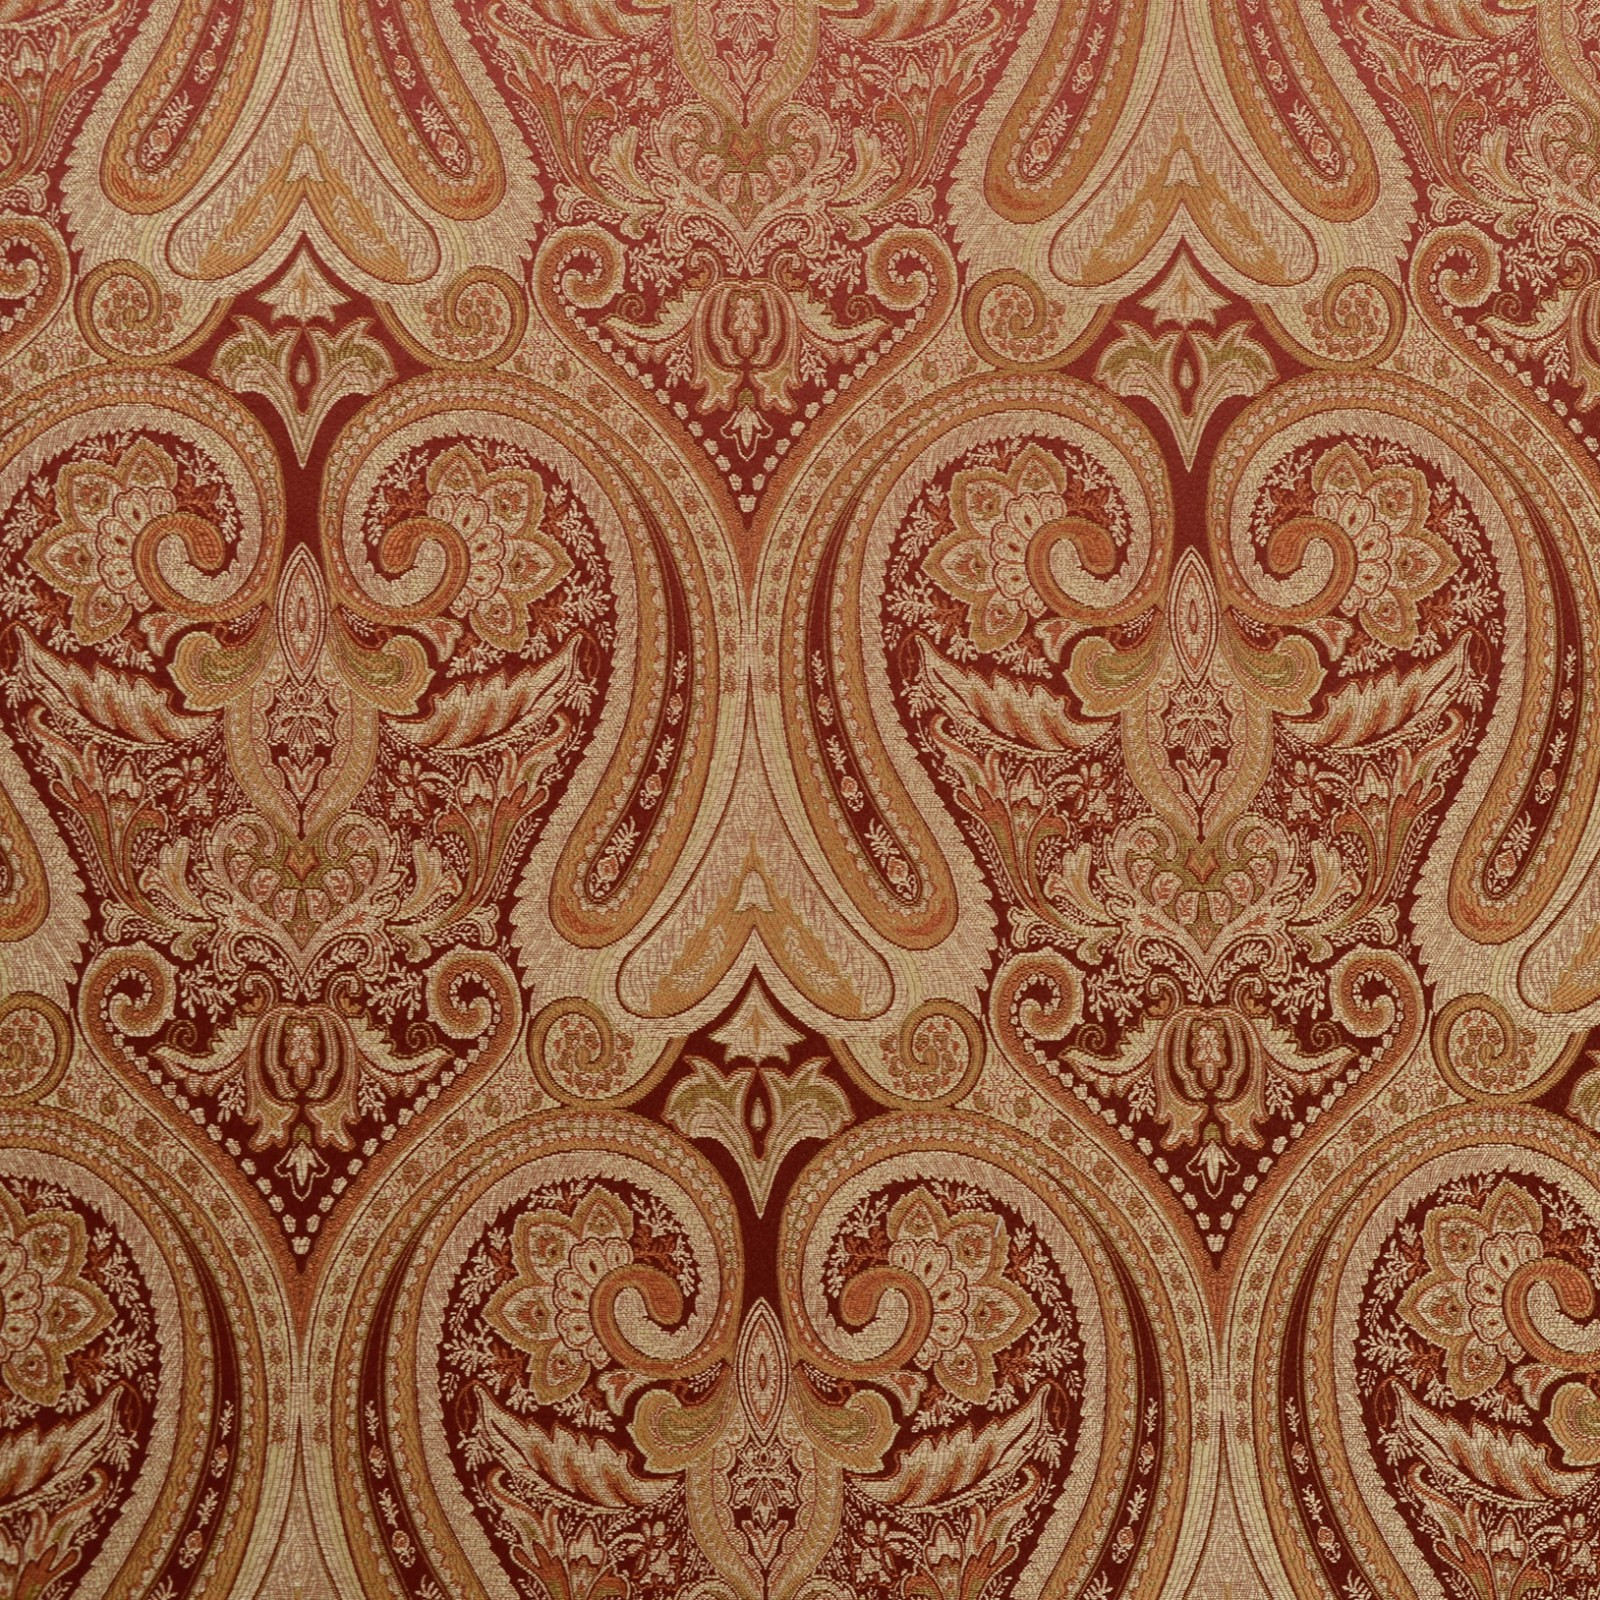 Rust Brown And Gold Paisley Damask Upholstery Fabric